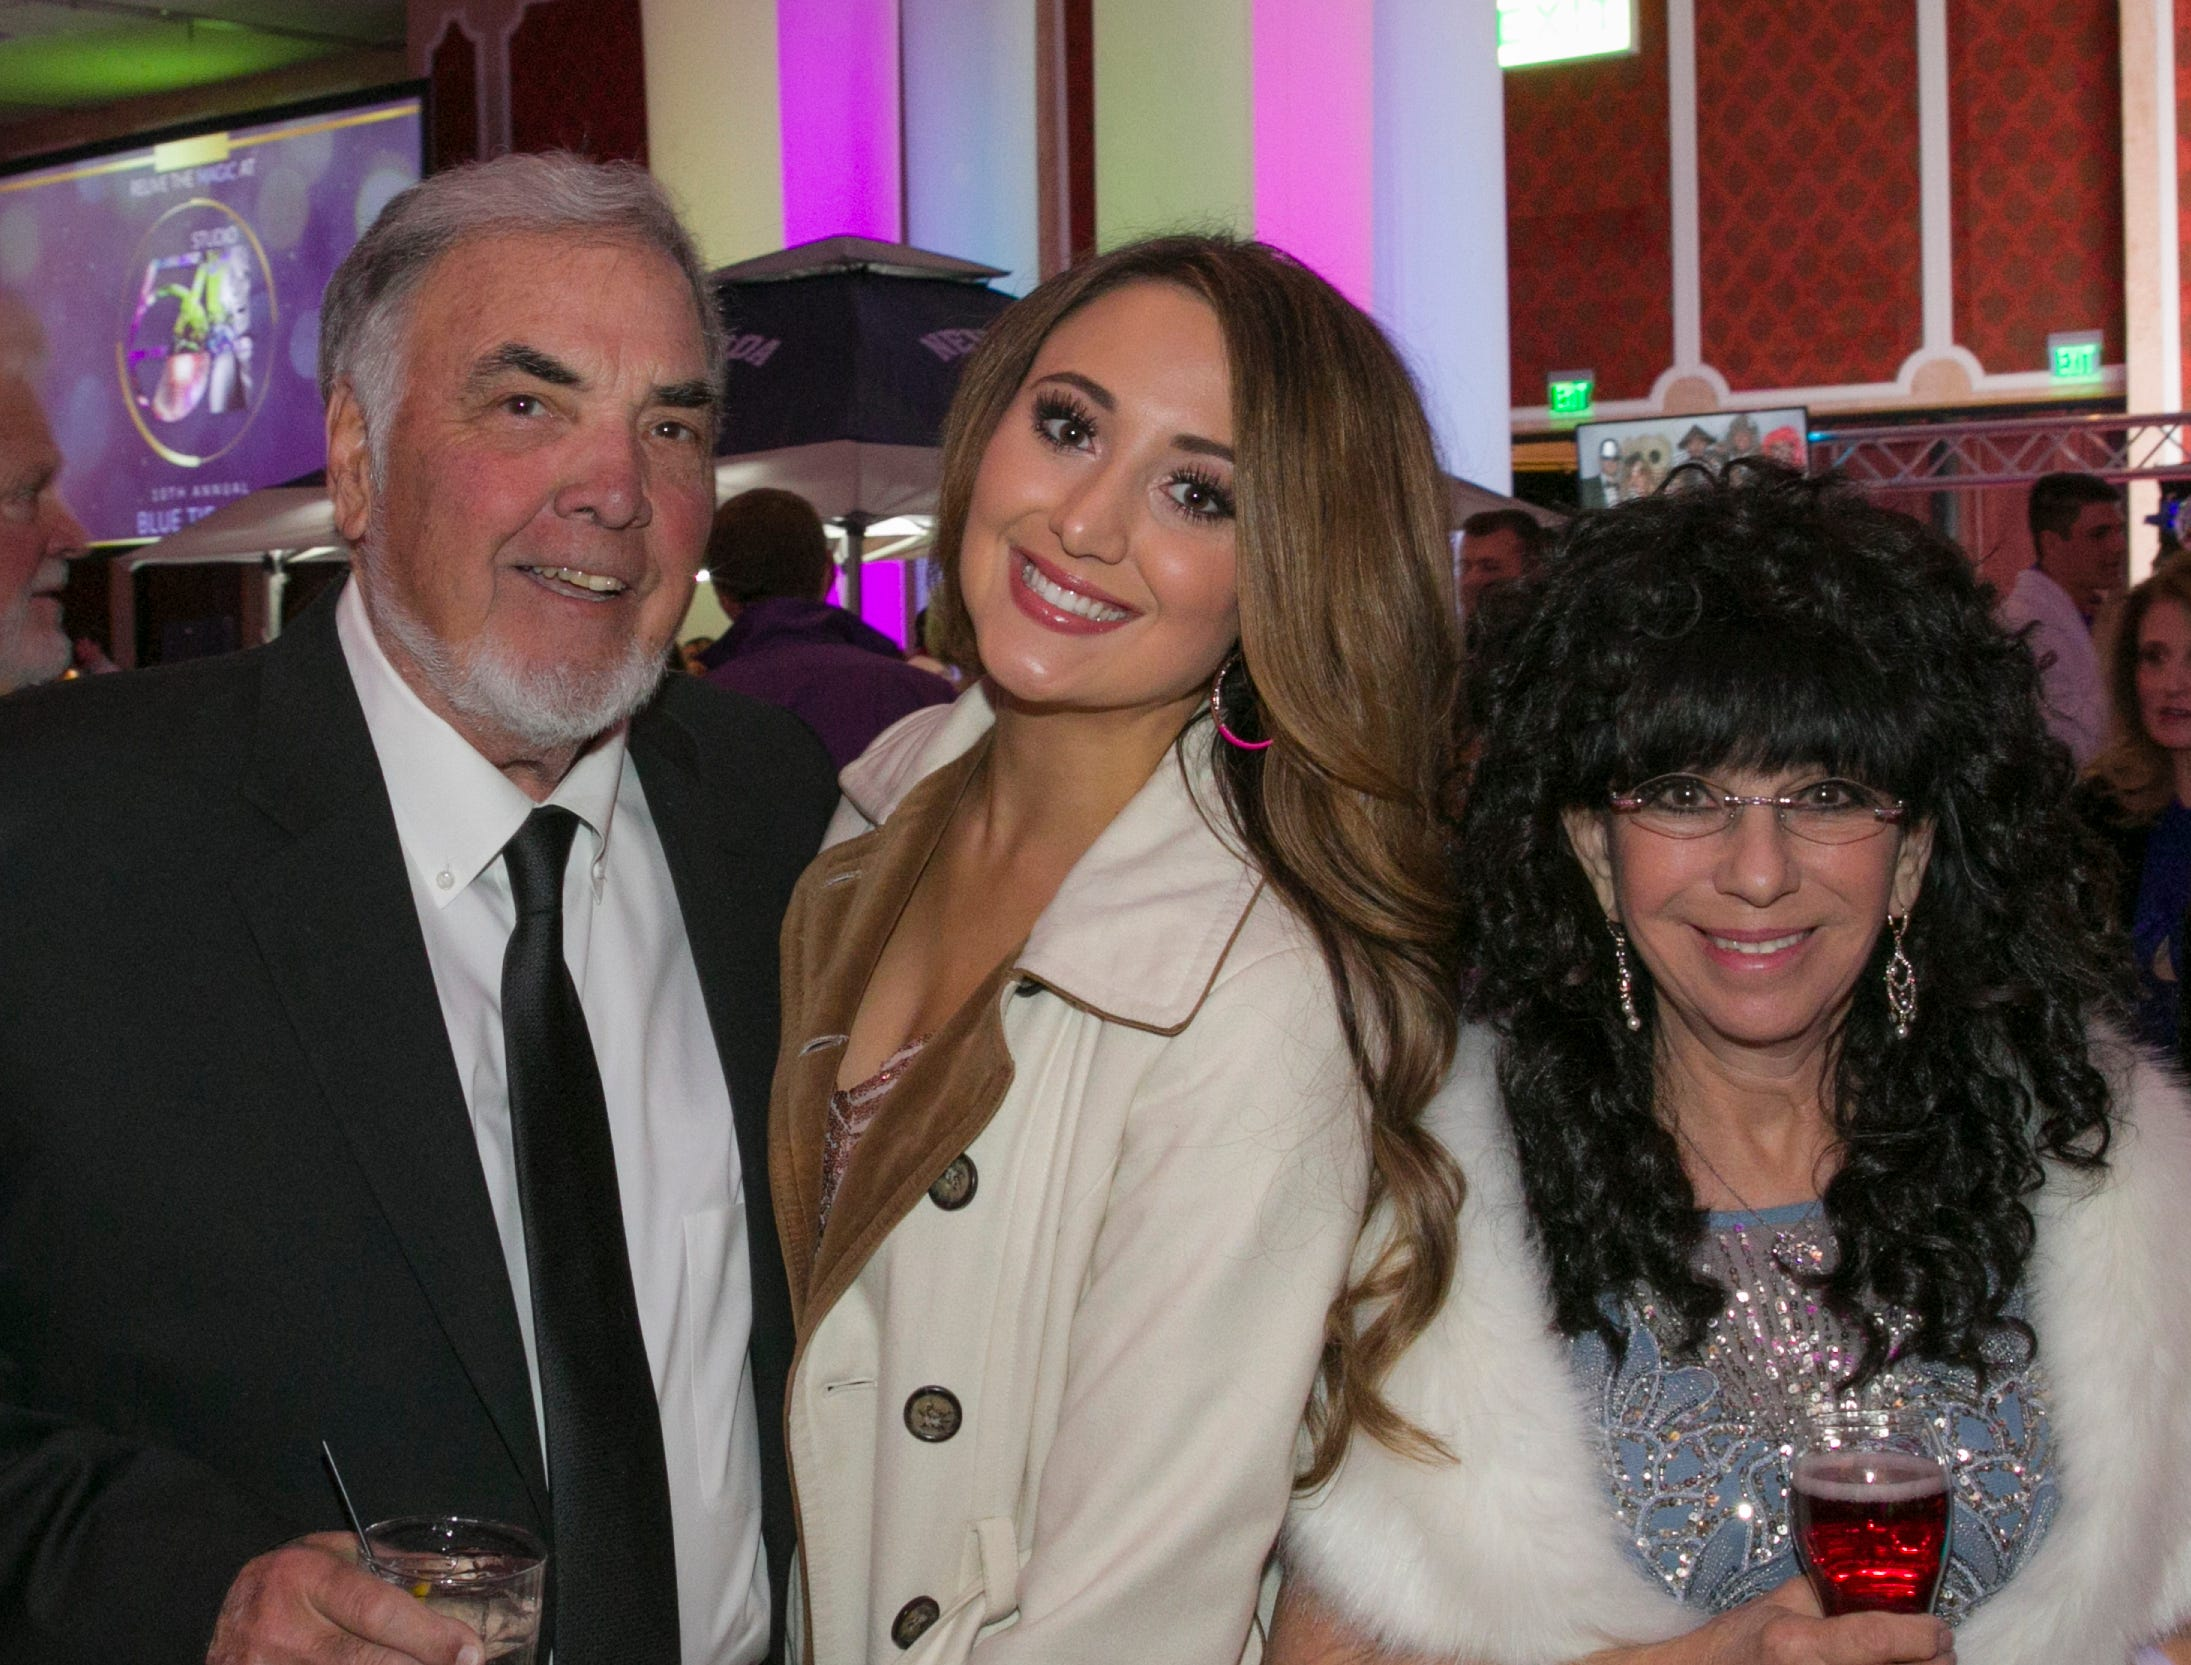 Dick and Mary Campagni with daughter Ashton Milligan during the 10th Annual Blue Tie Ball at the Peppermill Resort Spa Casino in Reno, NV on Friday night, Feb. 1, 2019.